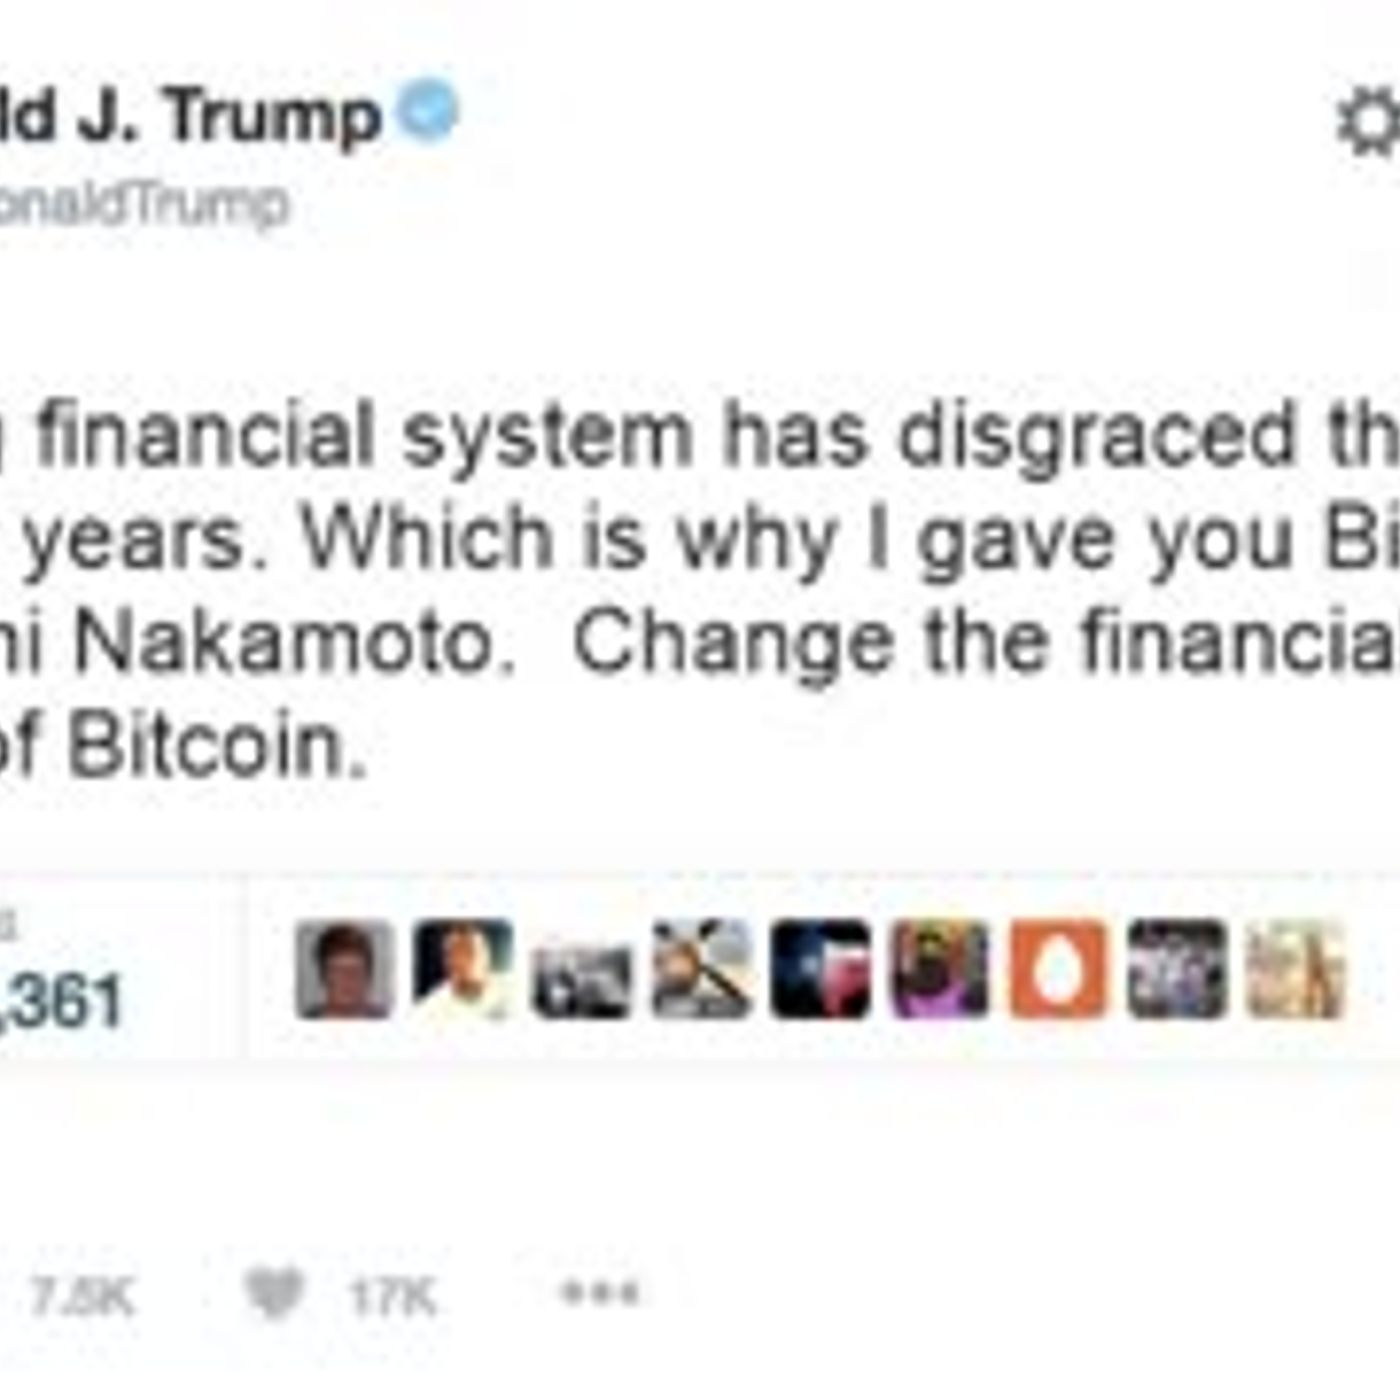 TRUMP Trade War with CHINA - TWEETS MOVE BITCOIN - Should we Follow 20 NEW COINS TO #YENIO!